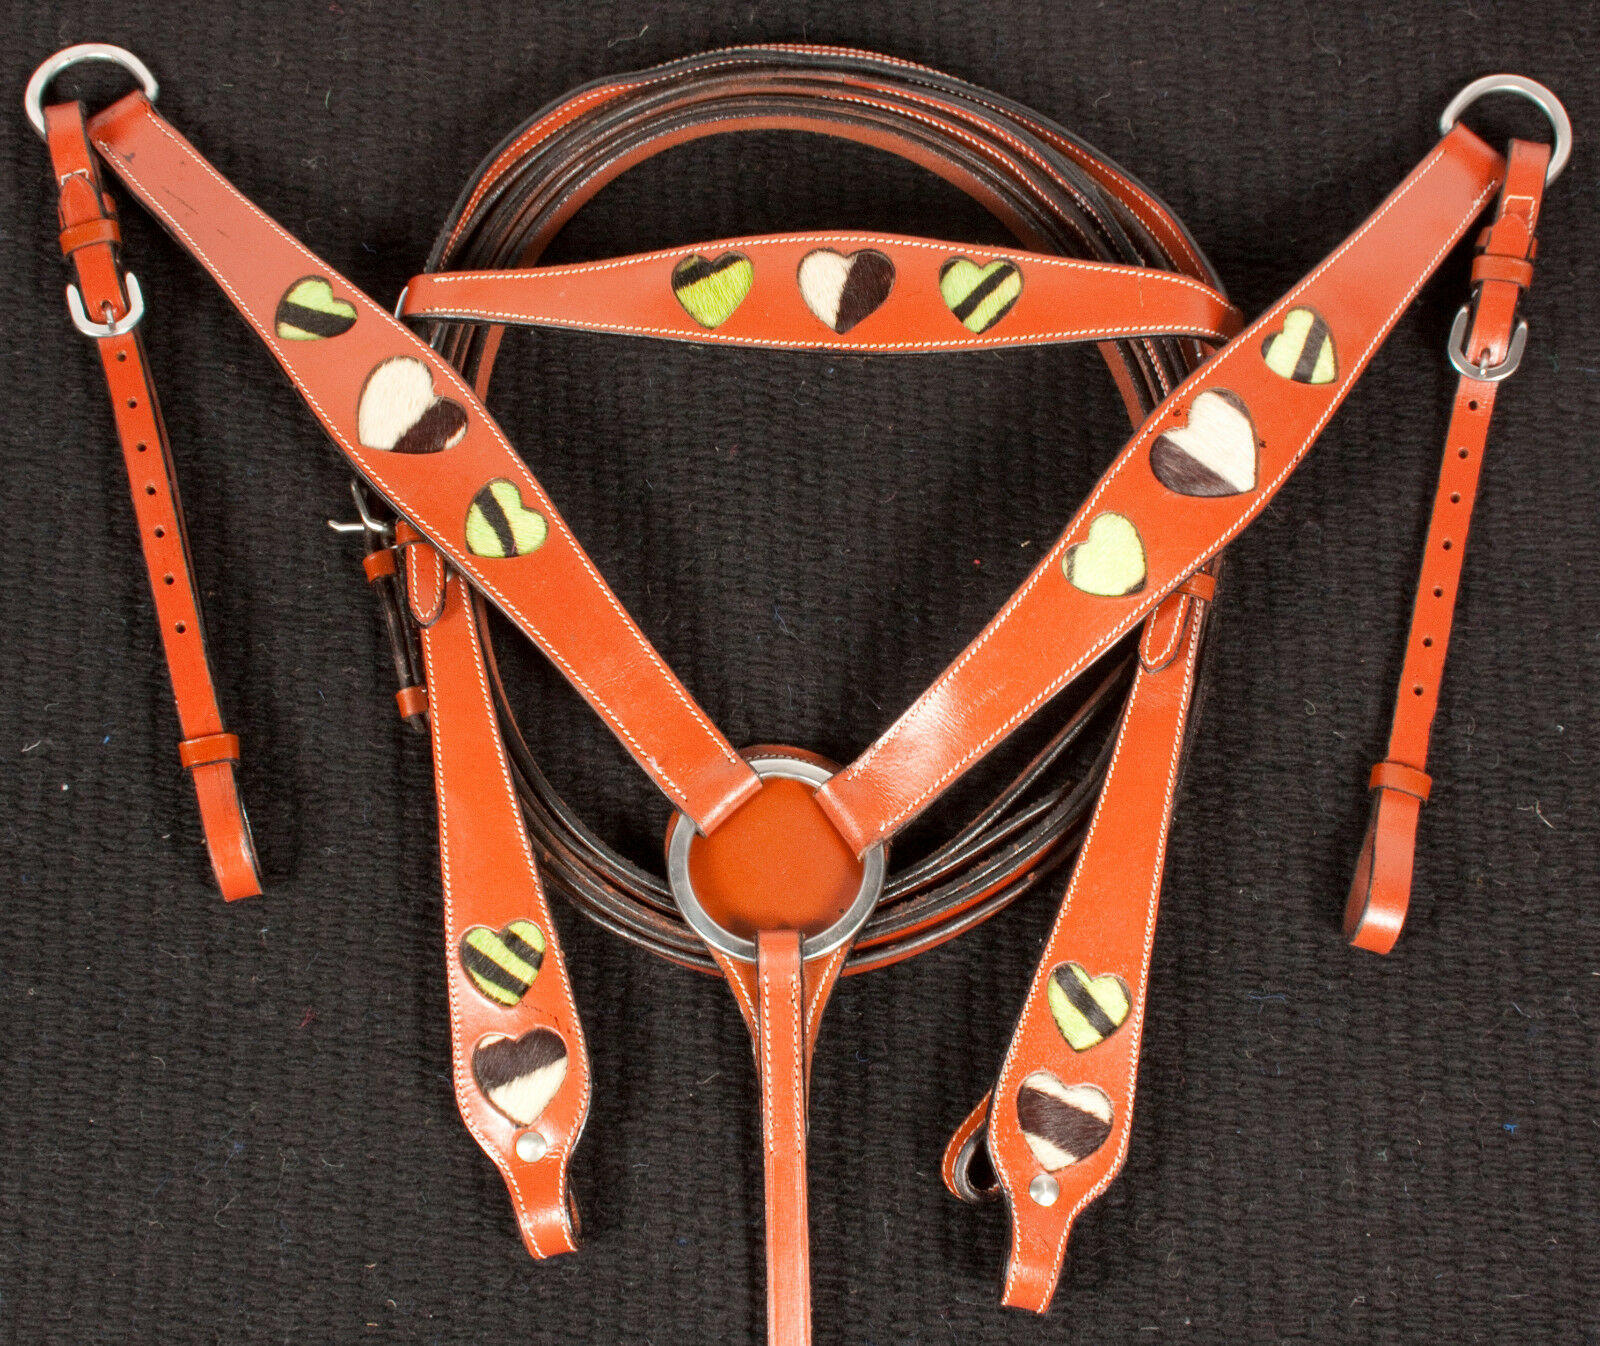 GREEN ZEBRA HEAR HEADSTALL  BREAST COLLAR REINS LEATHER WESTERN HORSE TAC  offering 100%